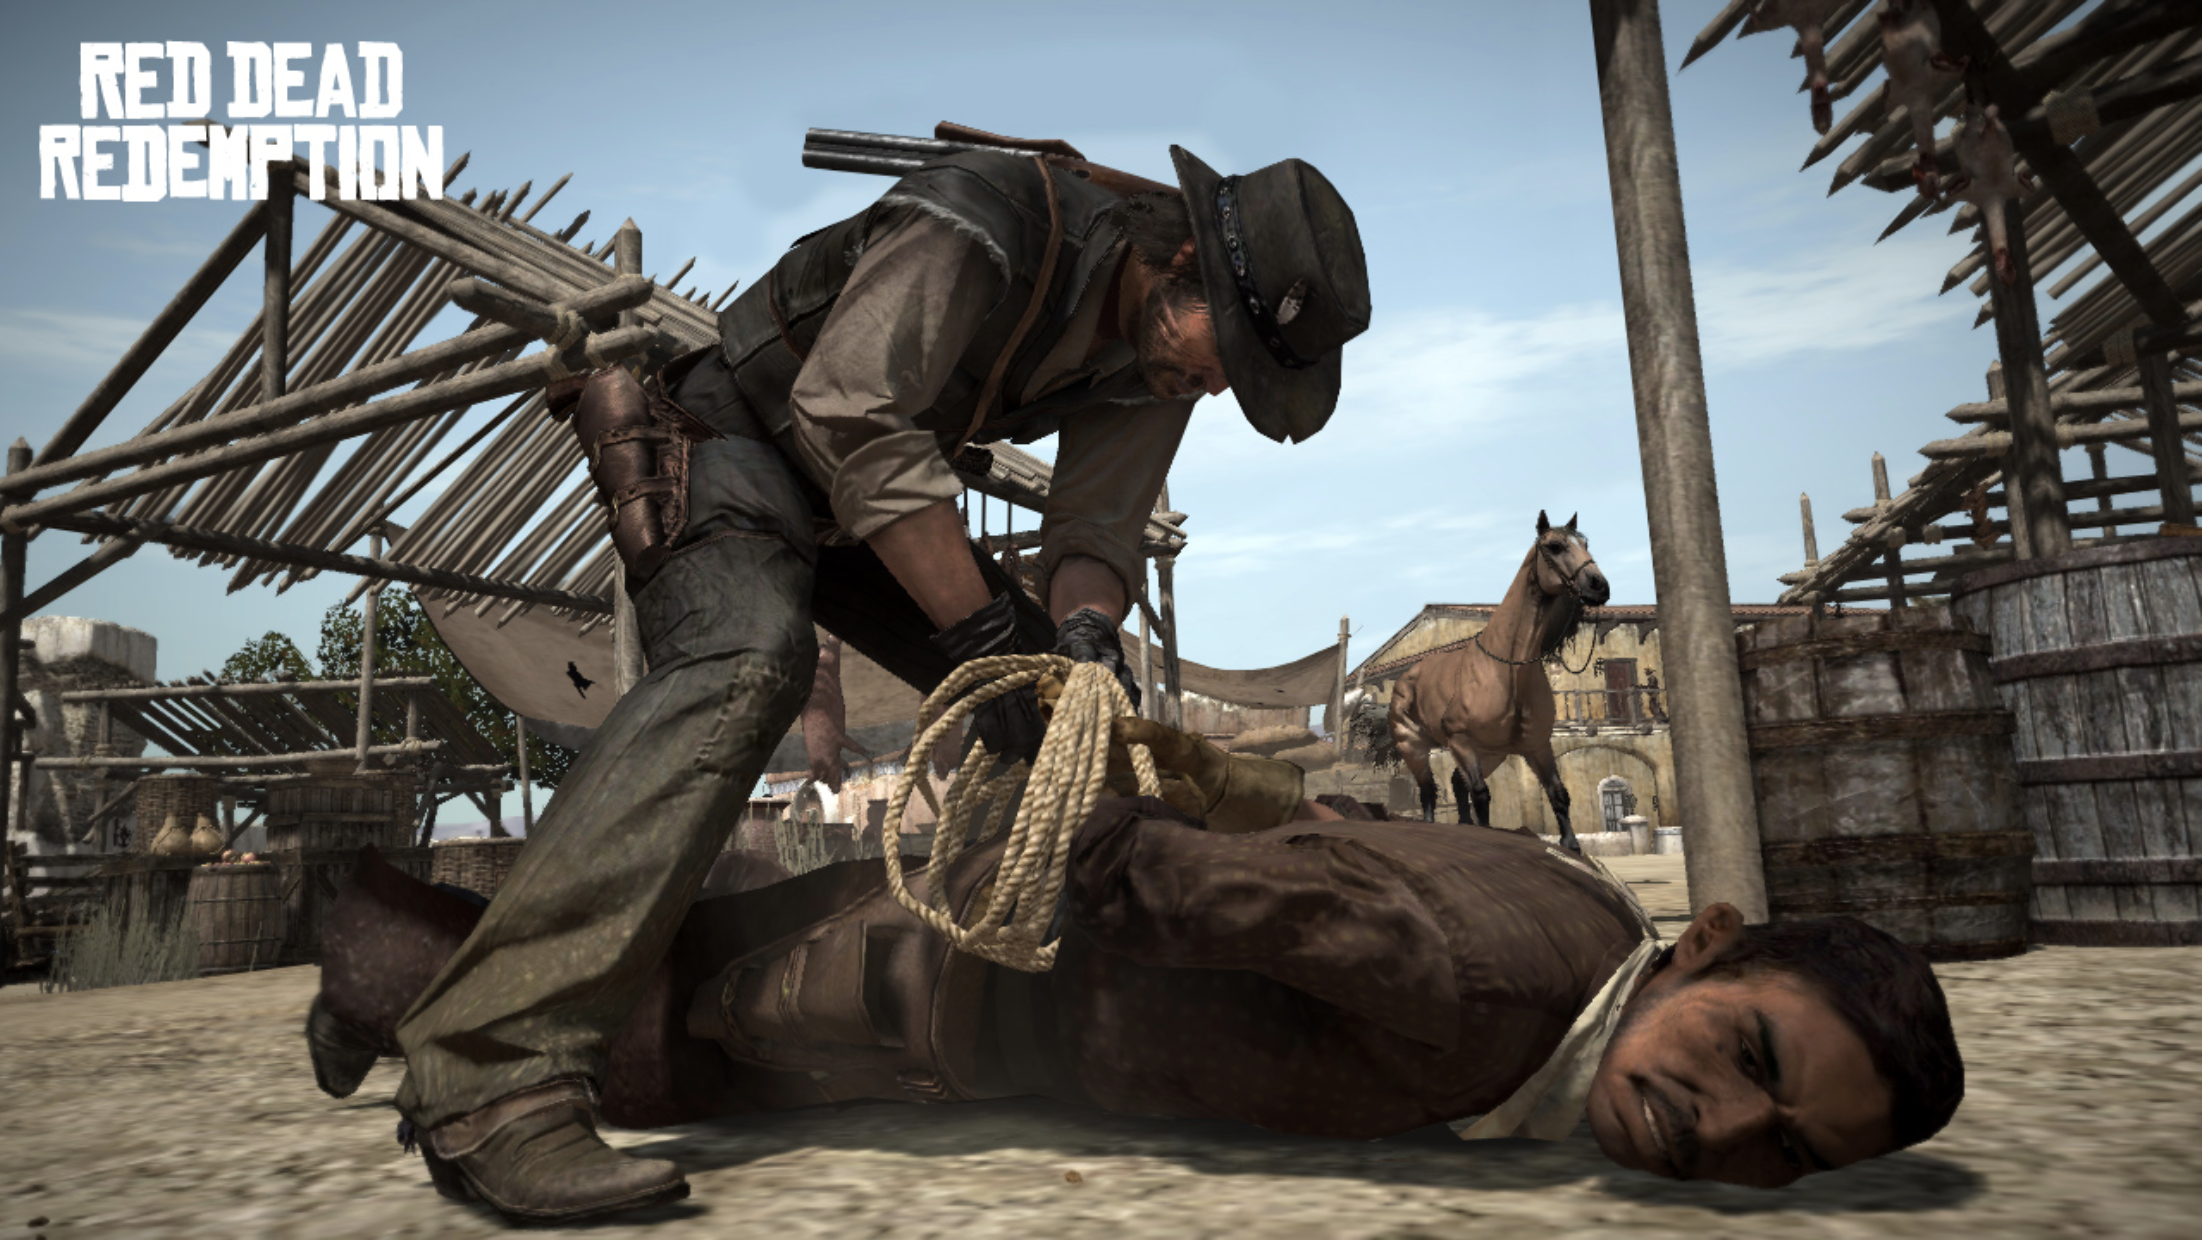 Red Dead Redemption Cheats Codes and Hacks : 10 year anniversary celebration.